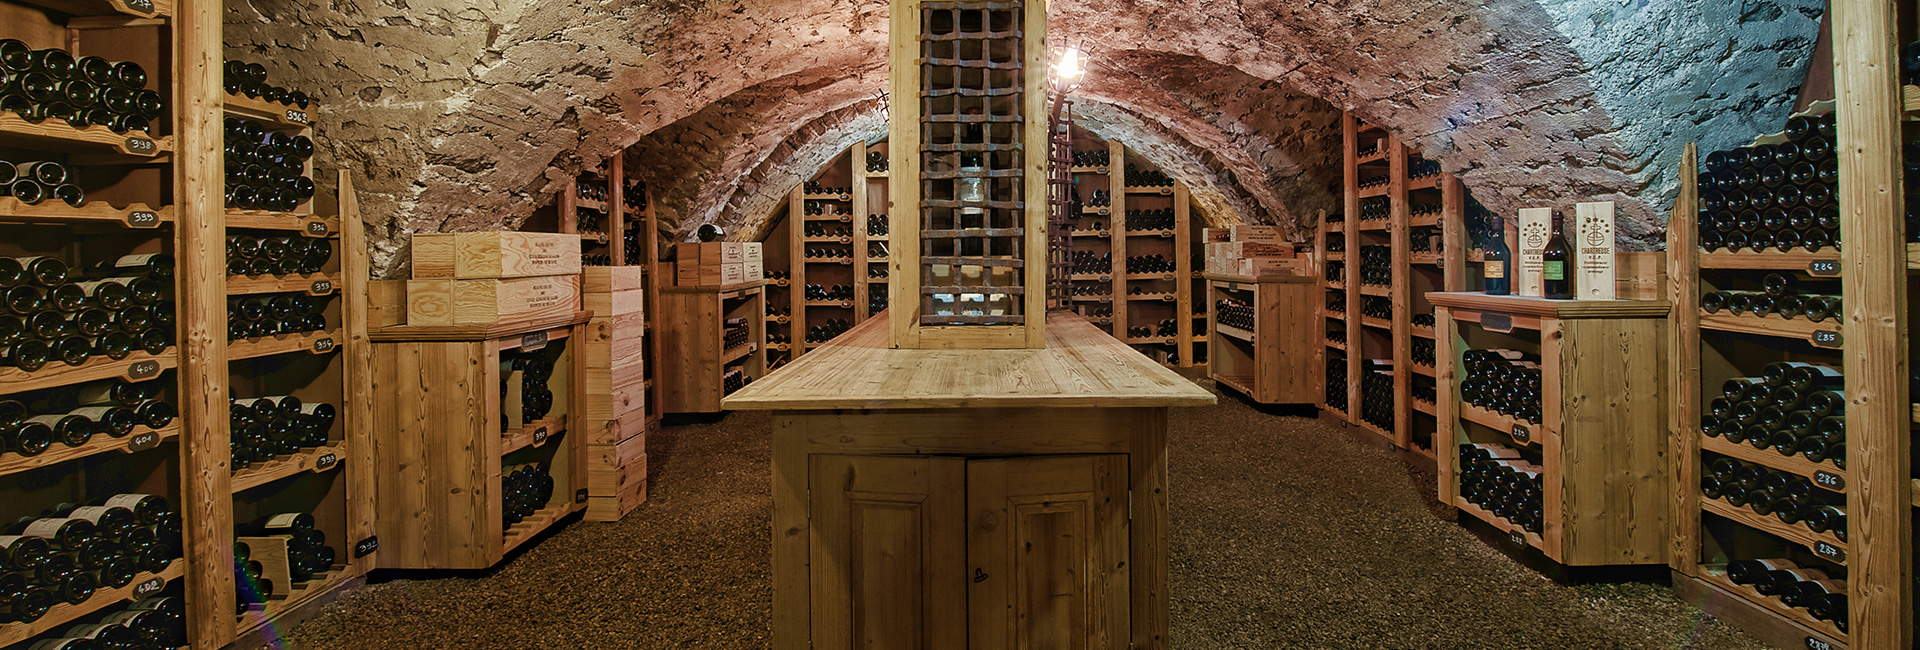 cave vin annecy restaurant annecy gastronomie annecy. Black Bedroom Furniture Sets. Home Design Ideas